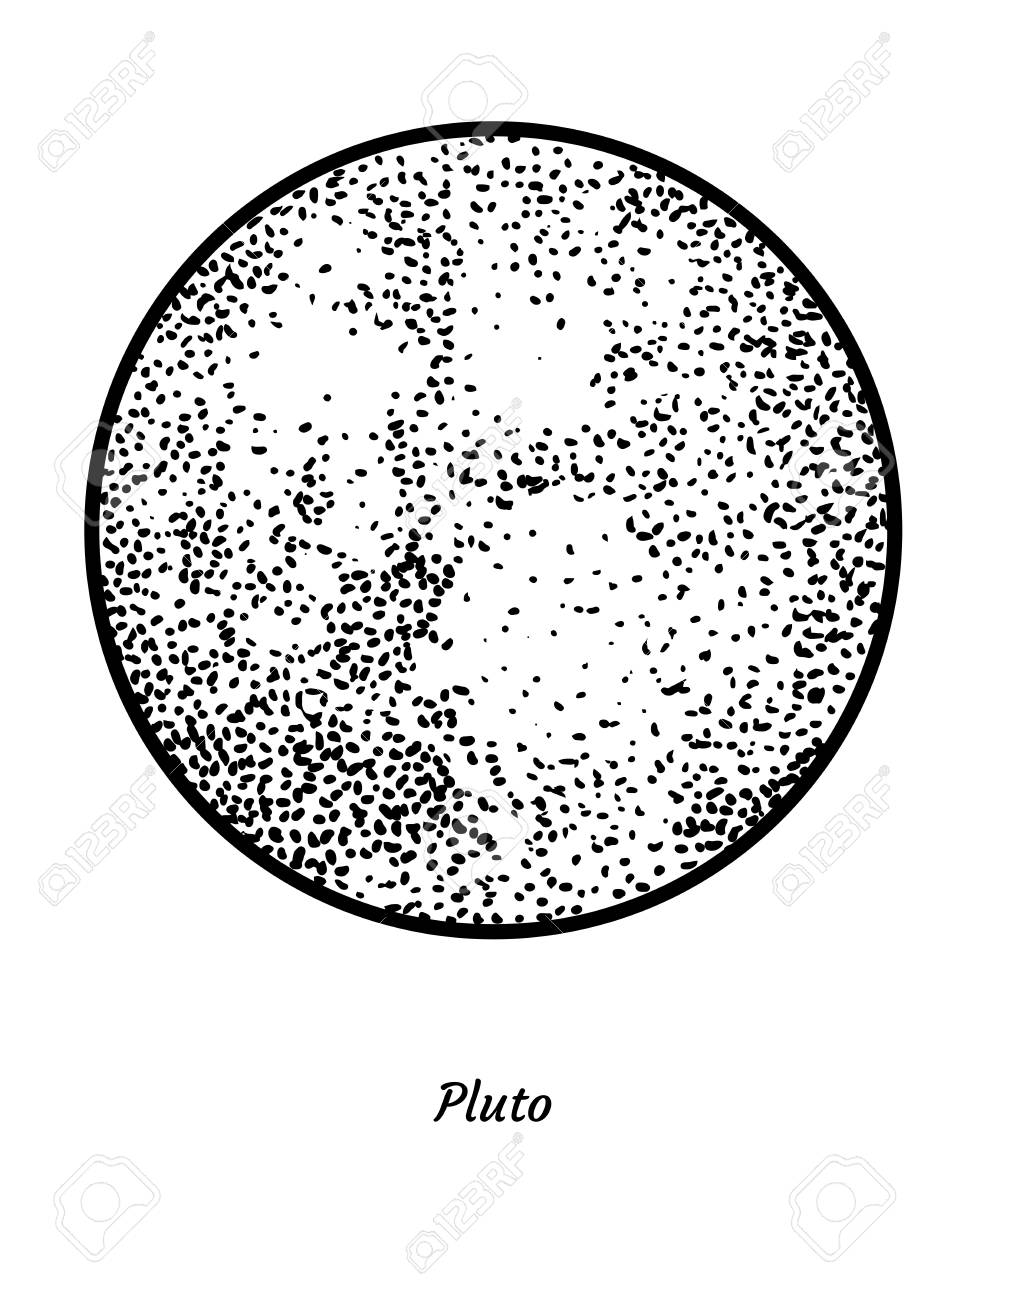 How To Draw Pluto The Planet : pluto, planet, Pluto, Planet, Illustration, Drawing, Engraving, Vector, Royalty, Cliparts,, Vectors,, Stock, Illustration., Image, 115419439.